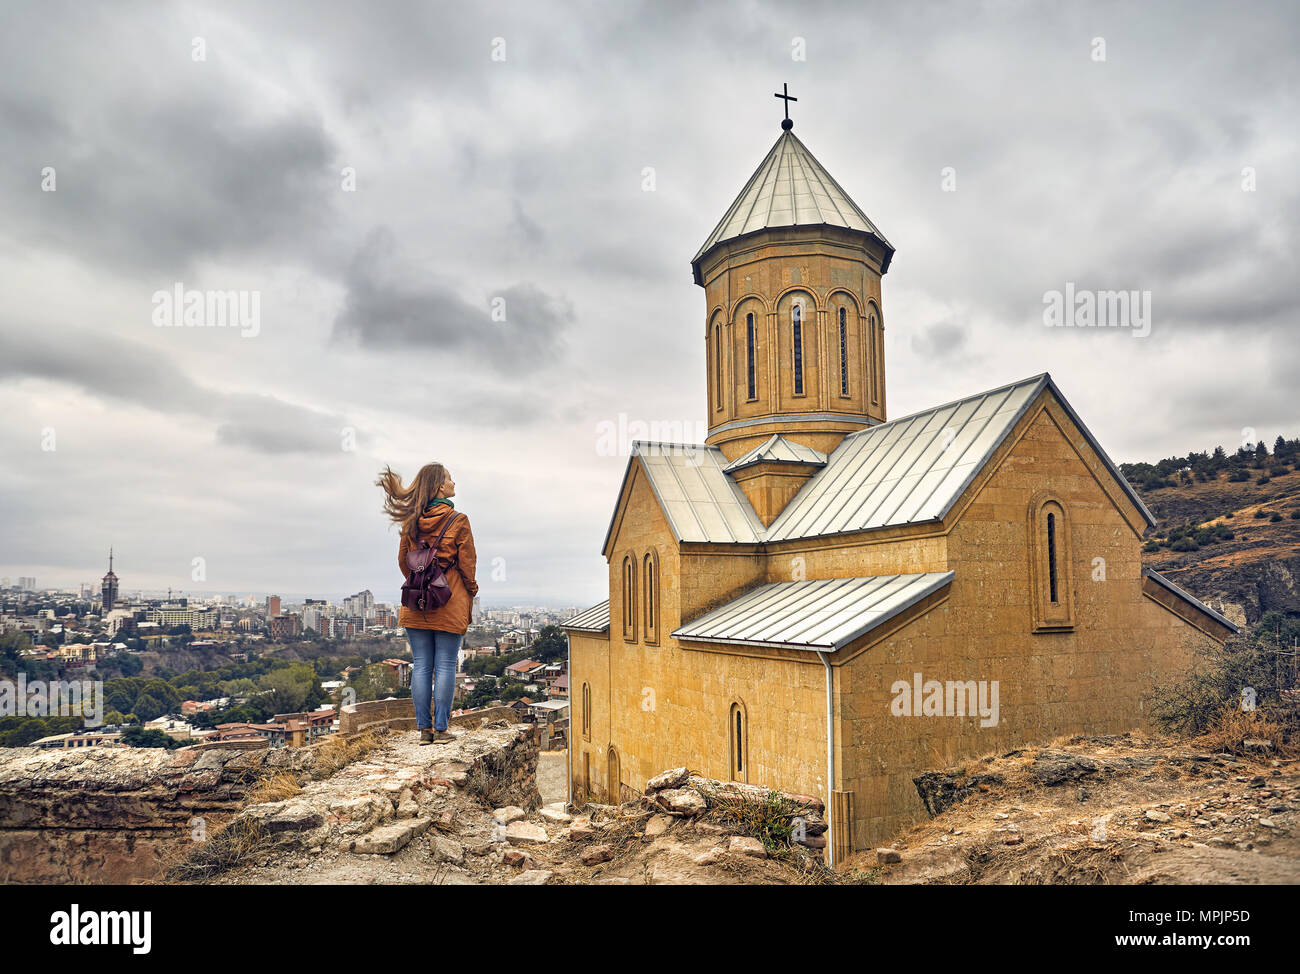 Tourist woman near Cathedral in Old medieval castle Narikala at overcast cloudy sky in Tbilisi, Georgia - Stock Image